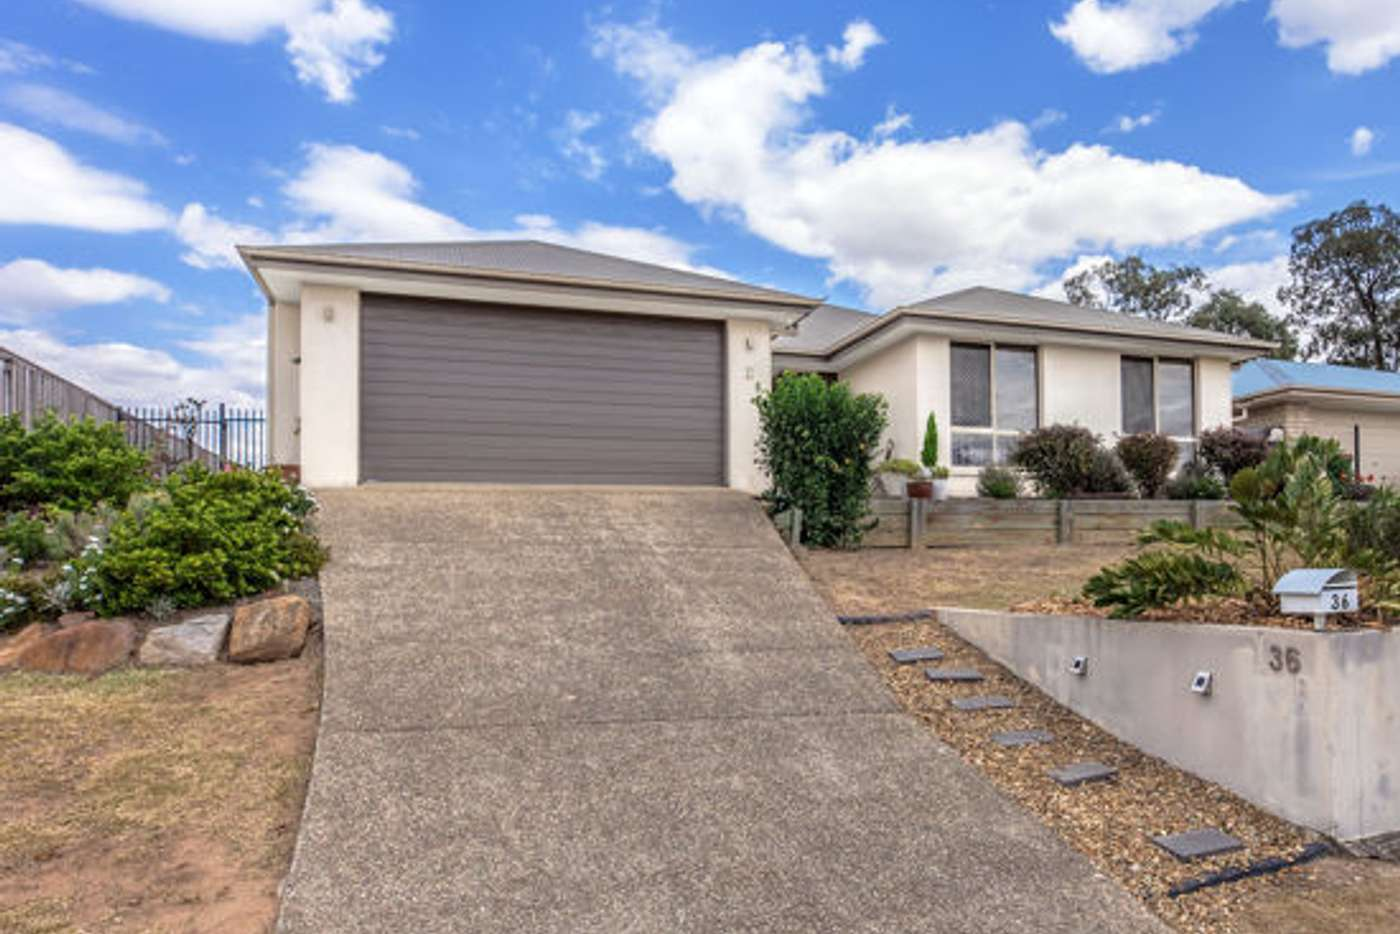 Main view of Homely house listing, 36 Eric Drive, Blackstone QLD 4304